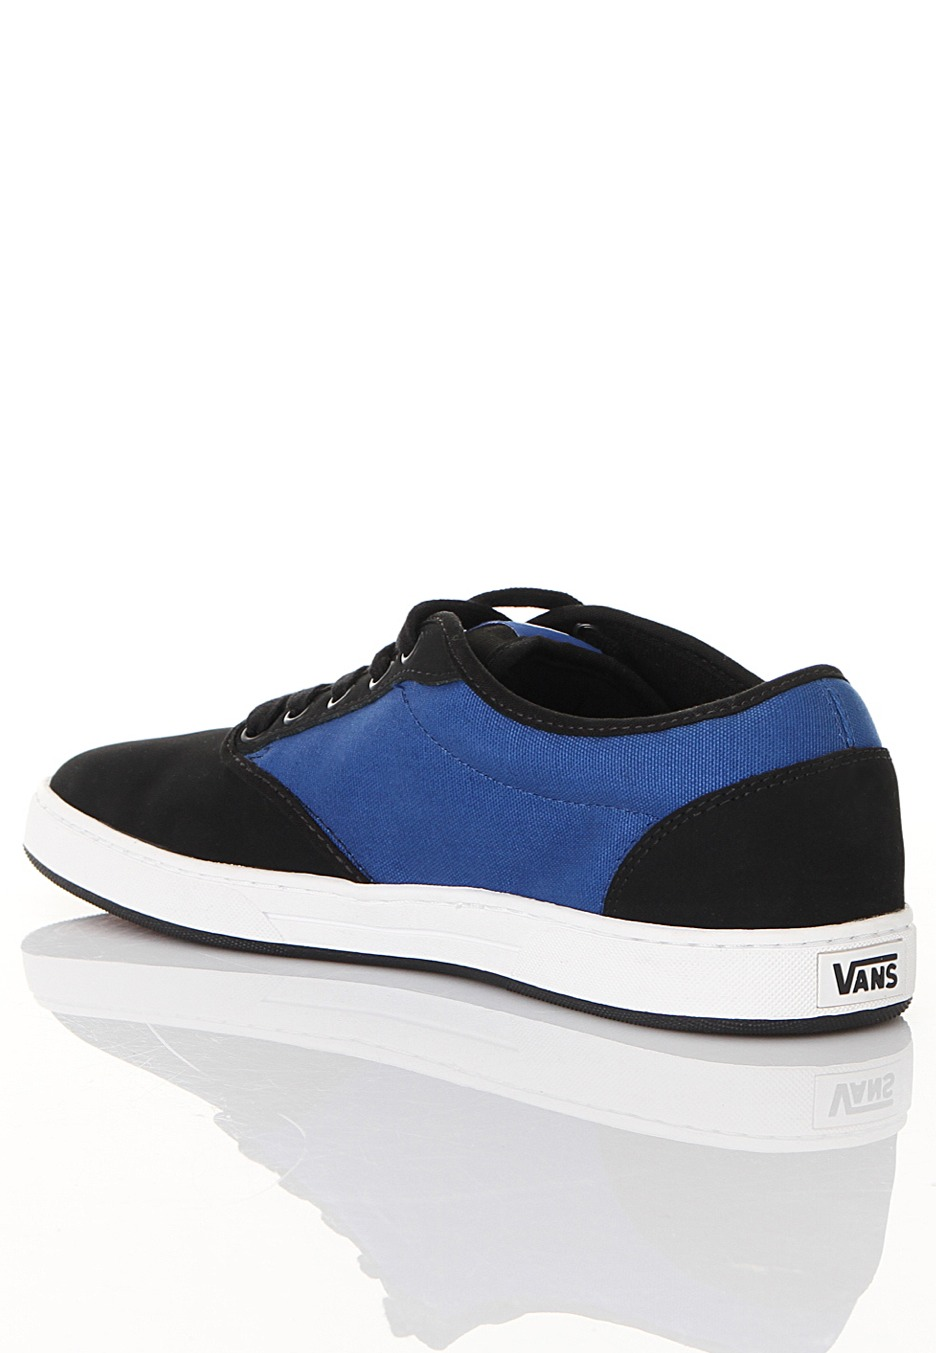 uk availability 53f96 4c645 vans preston blackblue shoes side lg.jpg